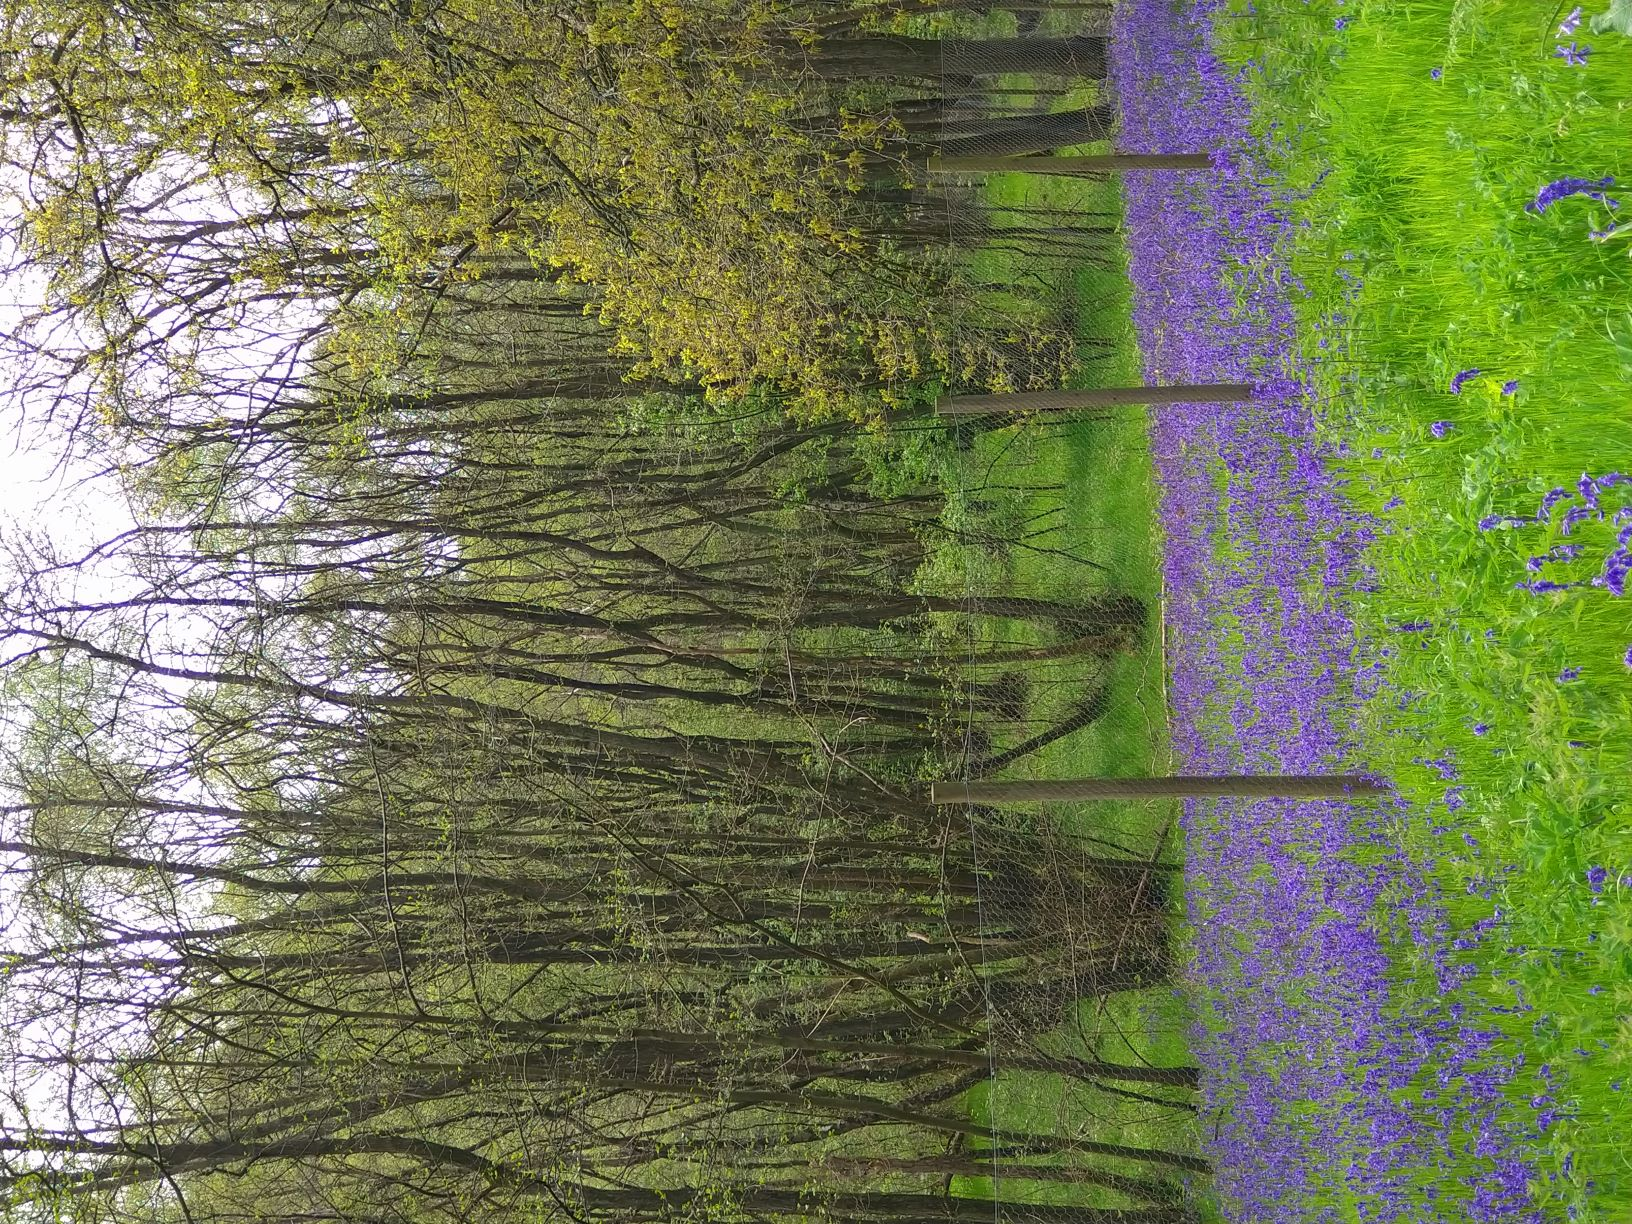 Bluebells at Riccal Dale